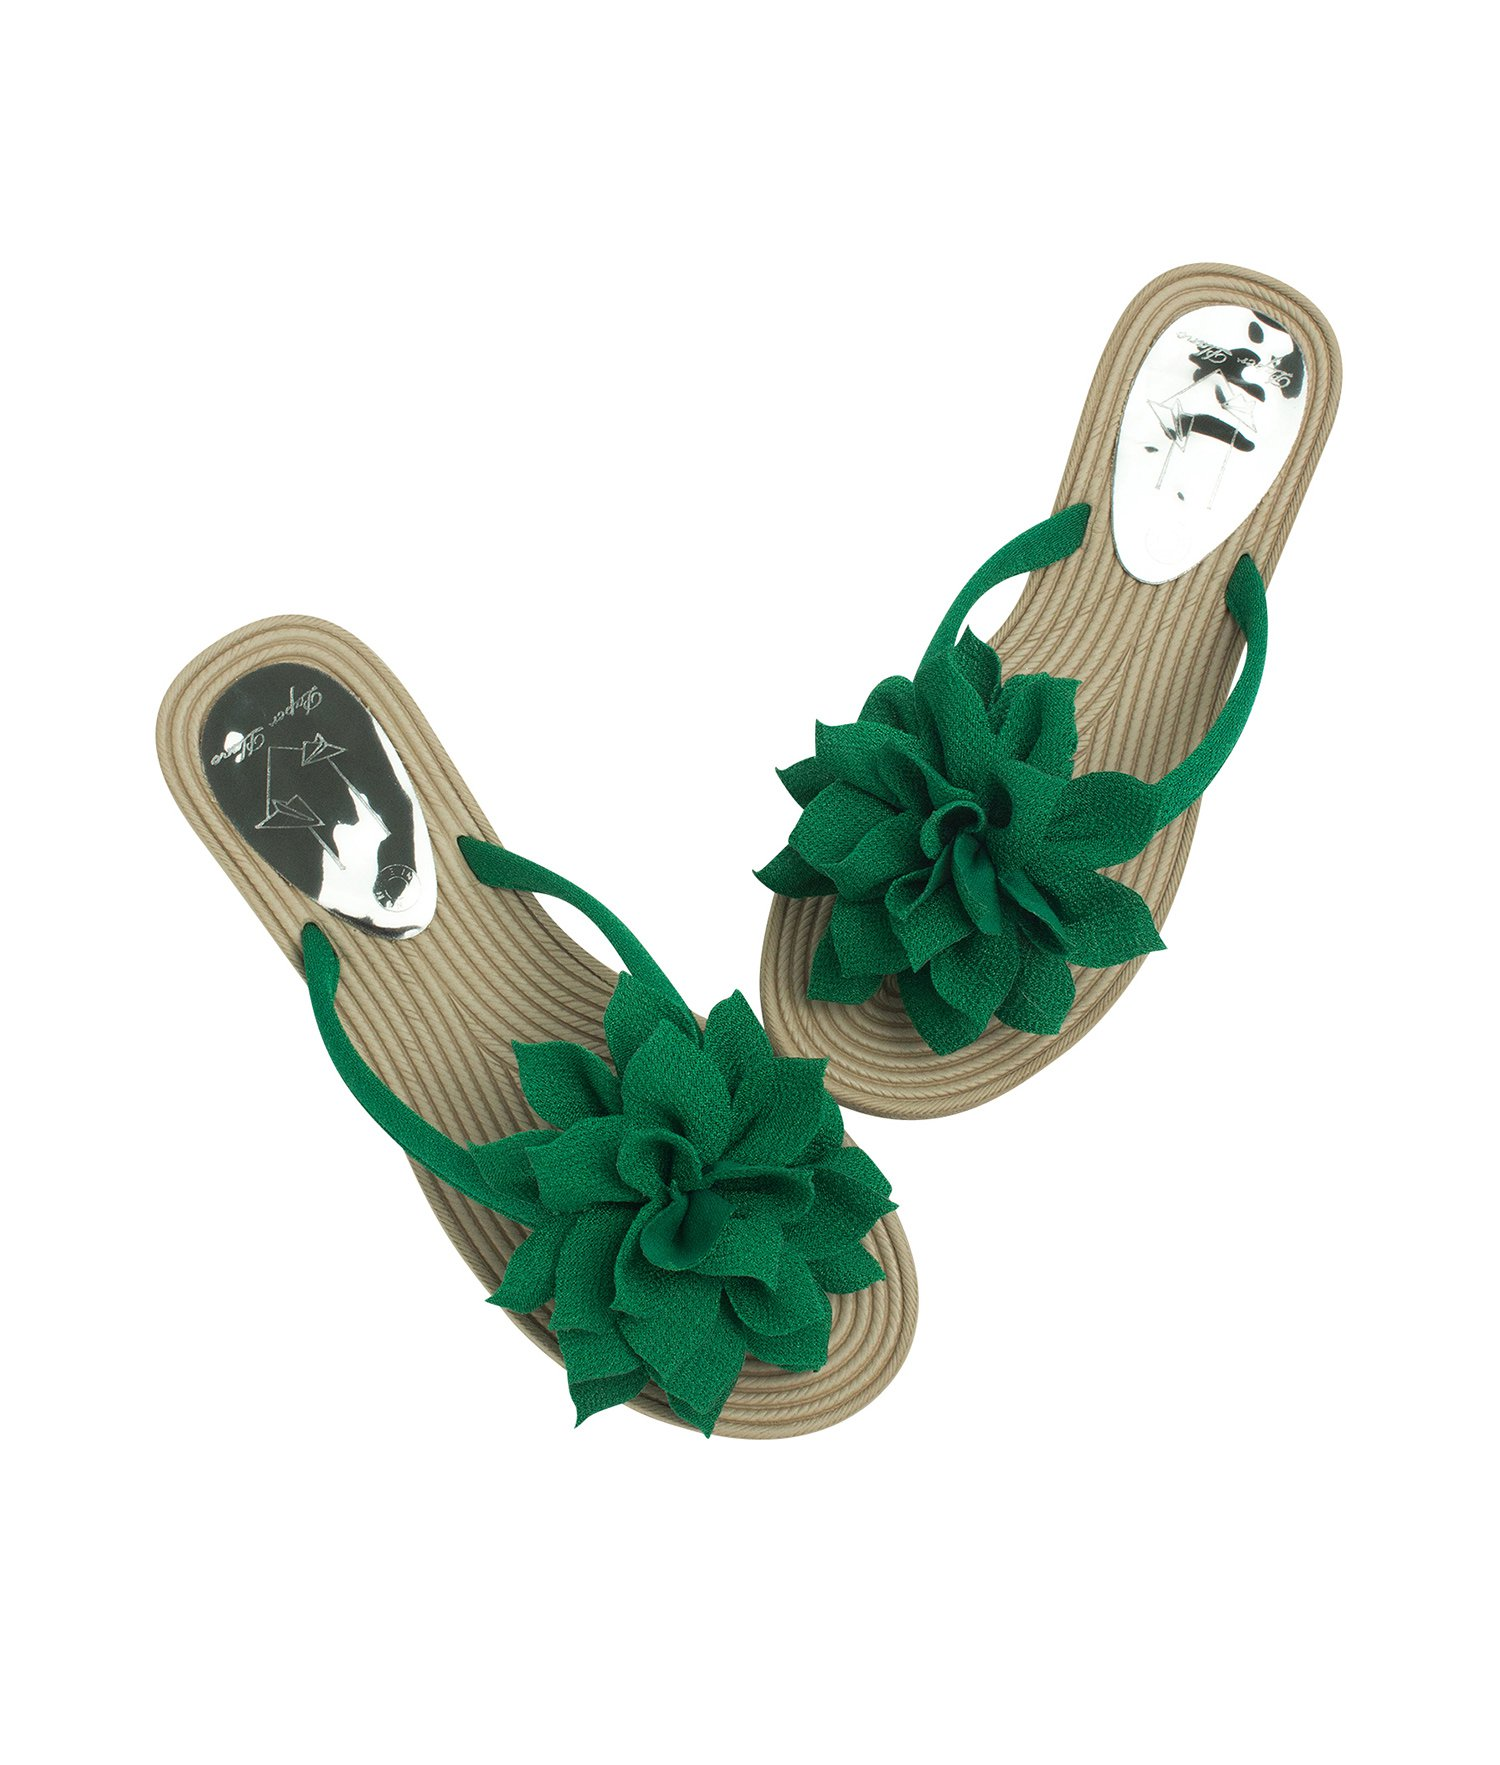 green beach sandals - Google Search